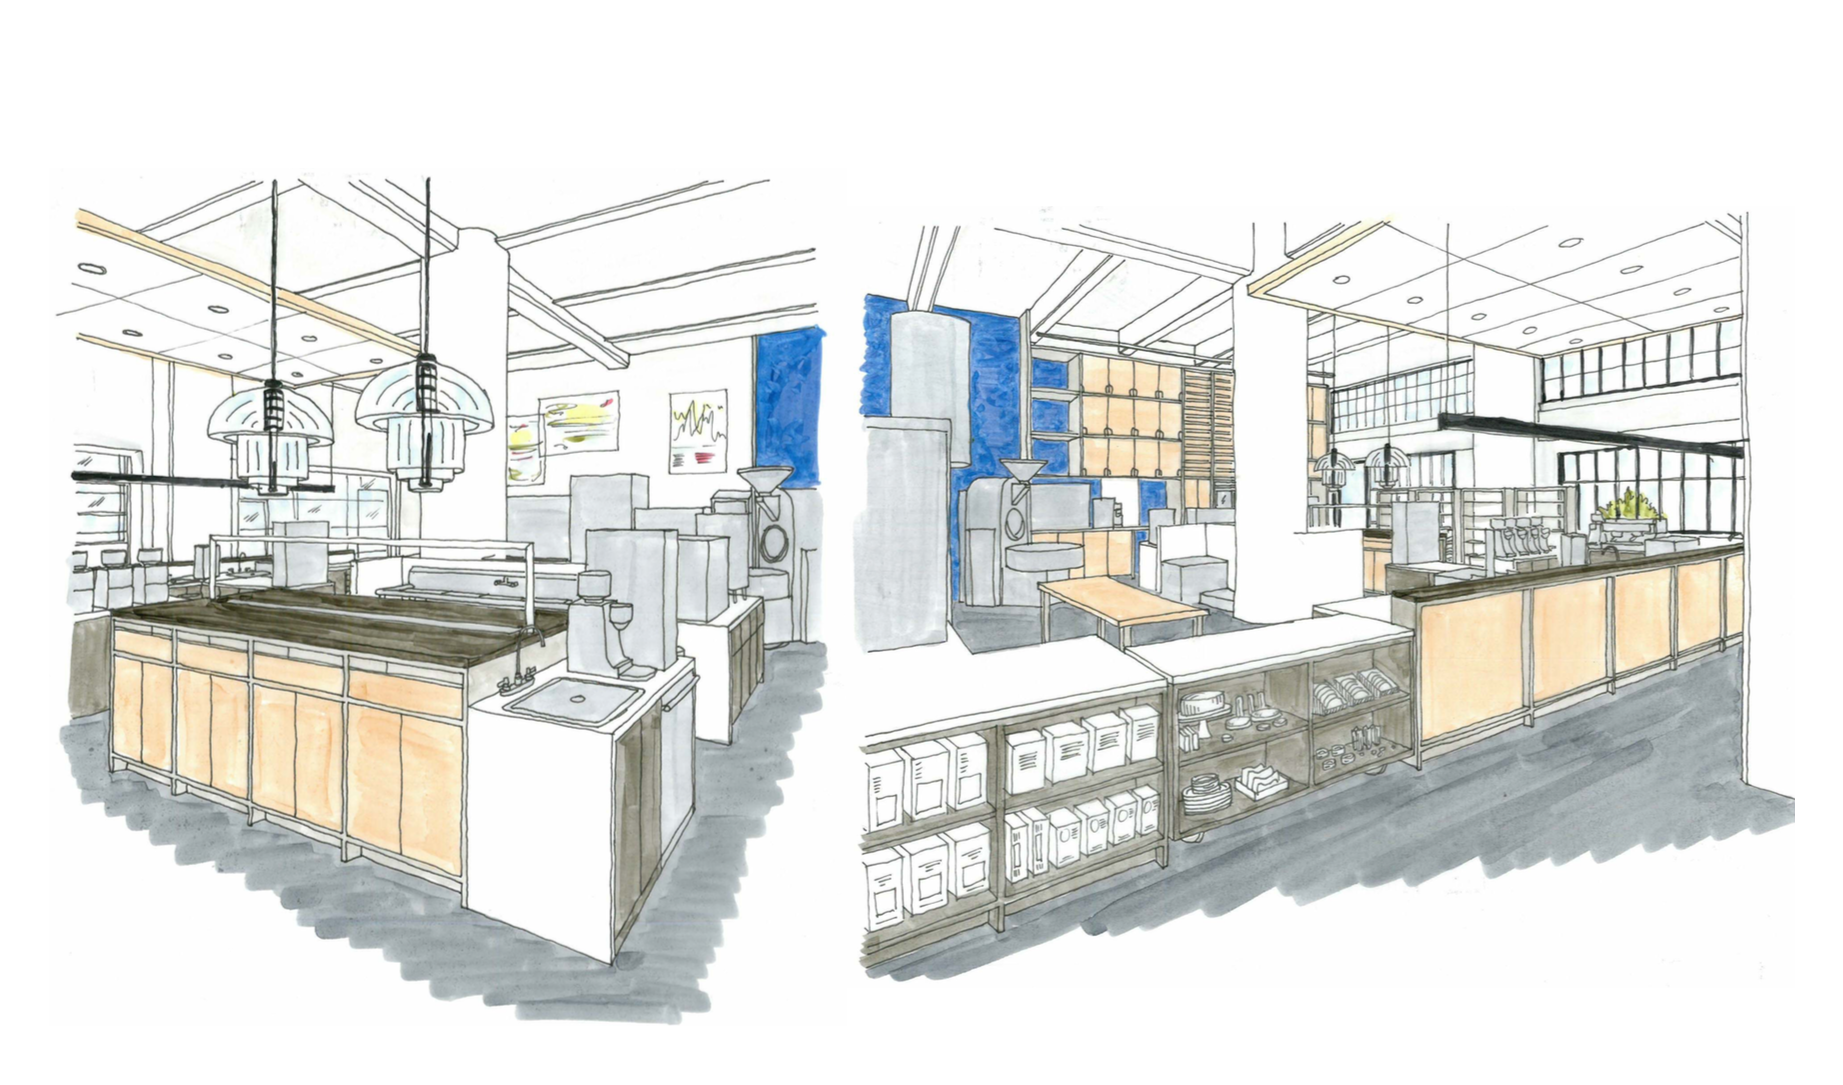 Bianco and Tartine's Massive Manufactory Brings Coffee, Bread, and Pizza to LA Next Month